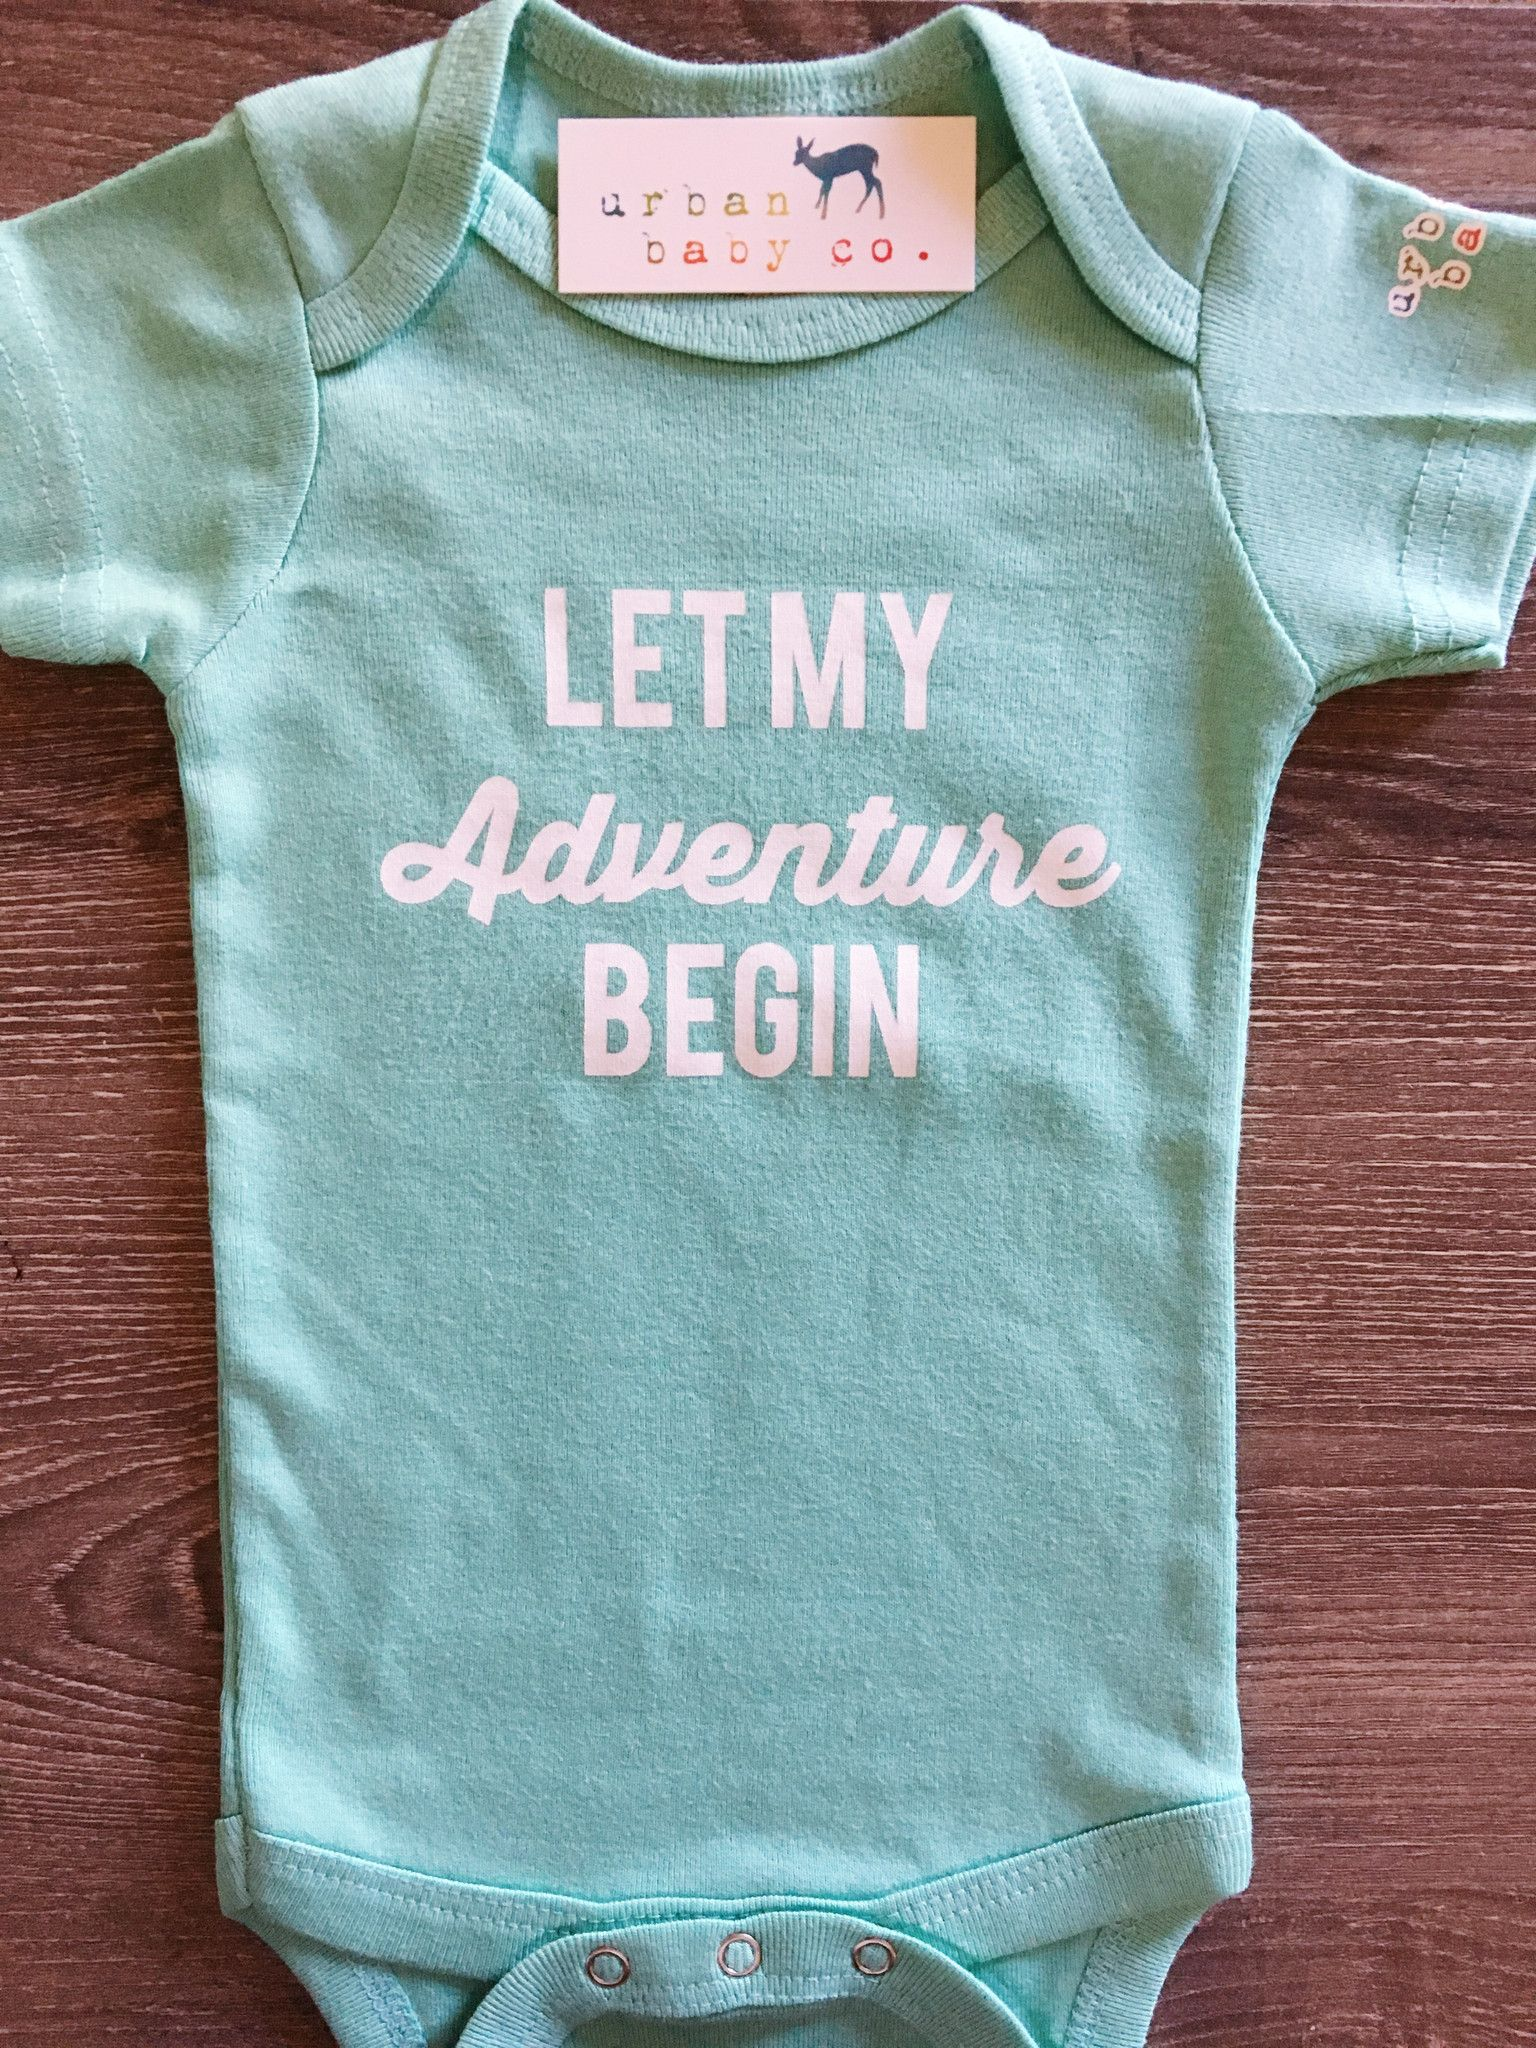 Let My Adventure Begin Baby Boy Girl Uni Gender Neutral